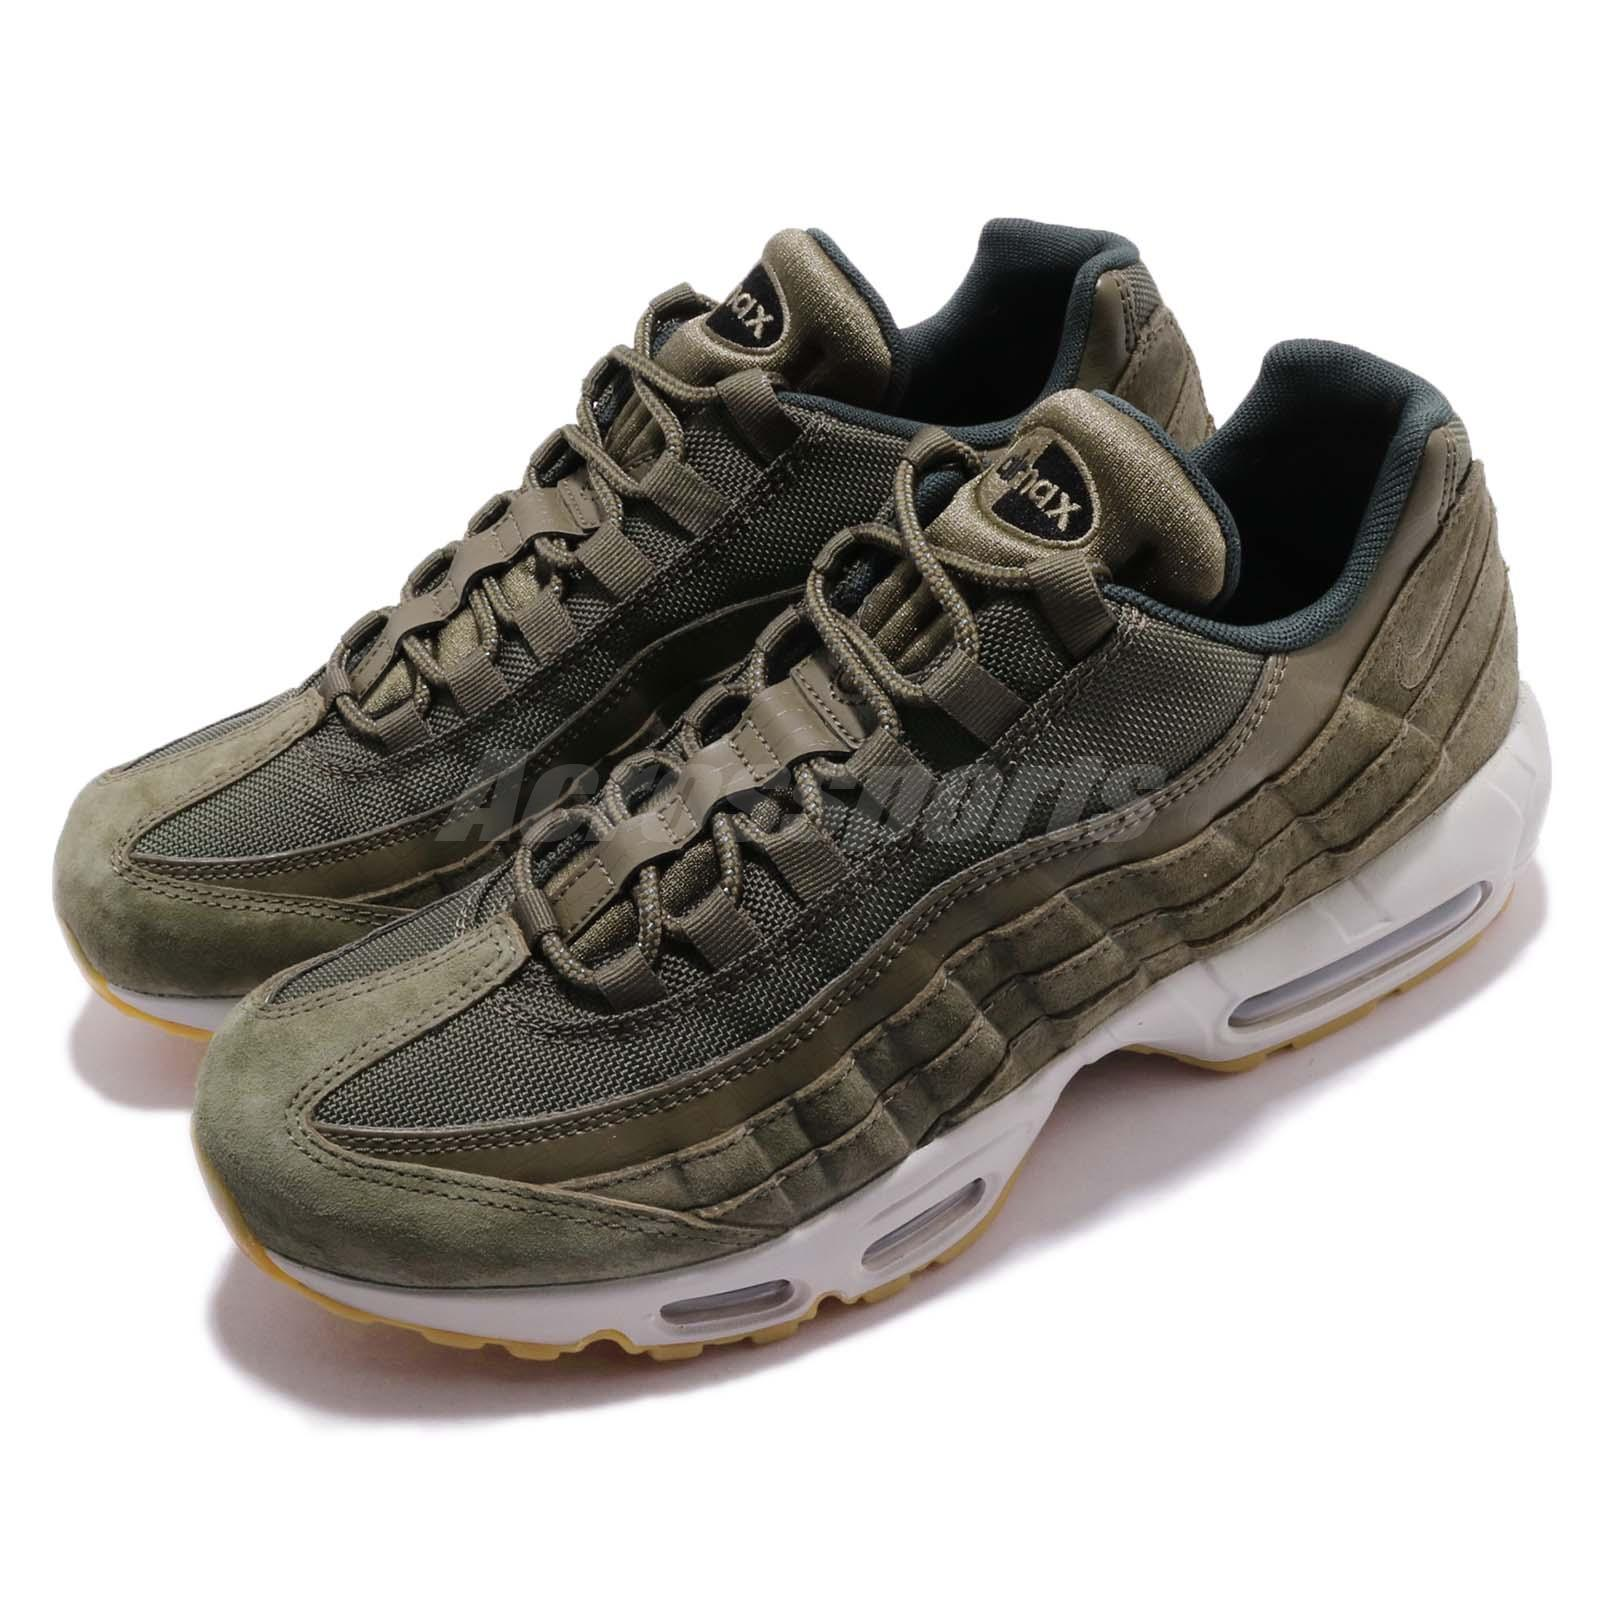 e3e7a3fc820 Details about Nike Air Max 95 SE Olive Canvas Gum Men Running Casual Shoes  Sneakers AJ2018-300